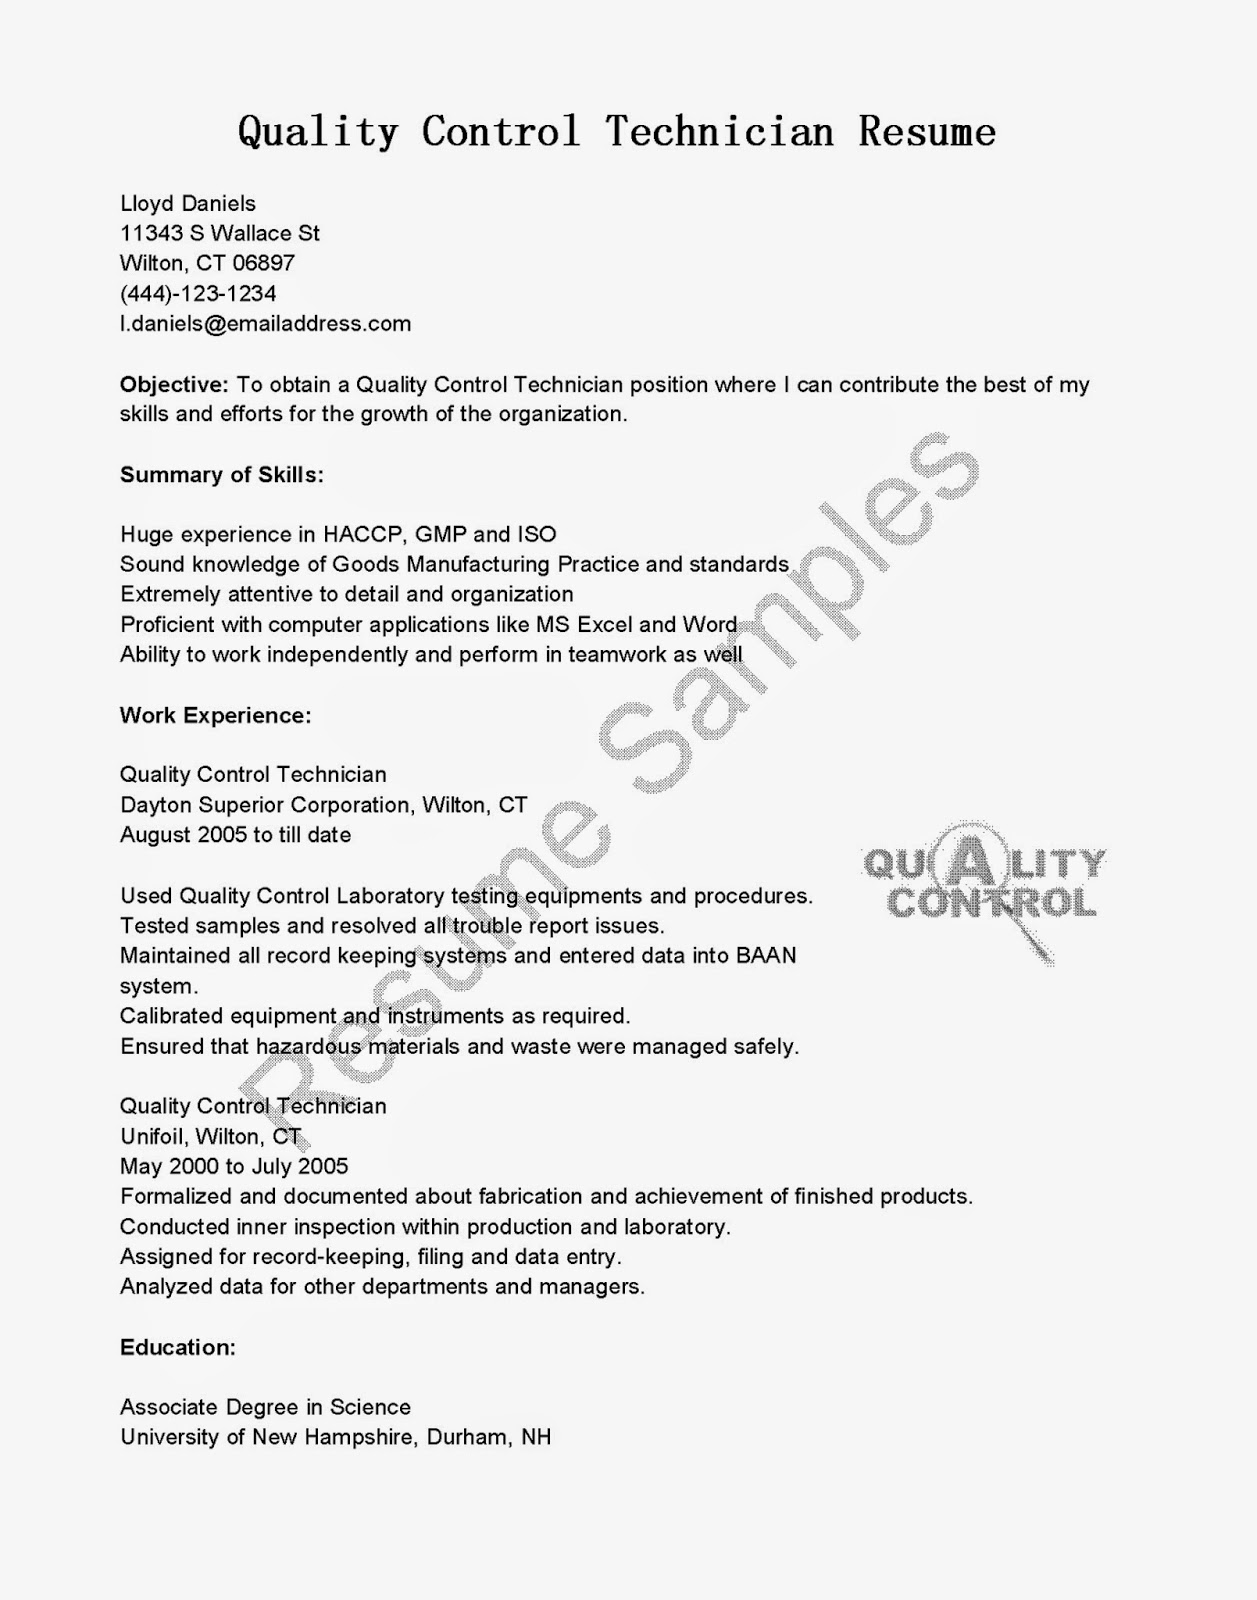 oil field service technician resume aaaaeroincus terrific awesome resume designs that will bag the job hongkiat fetching fast food cashier